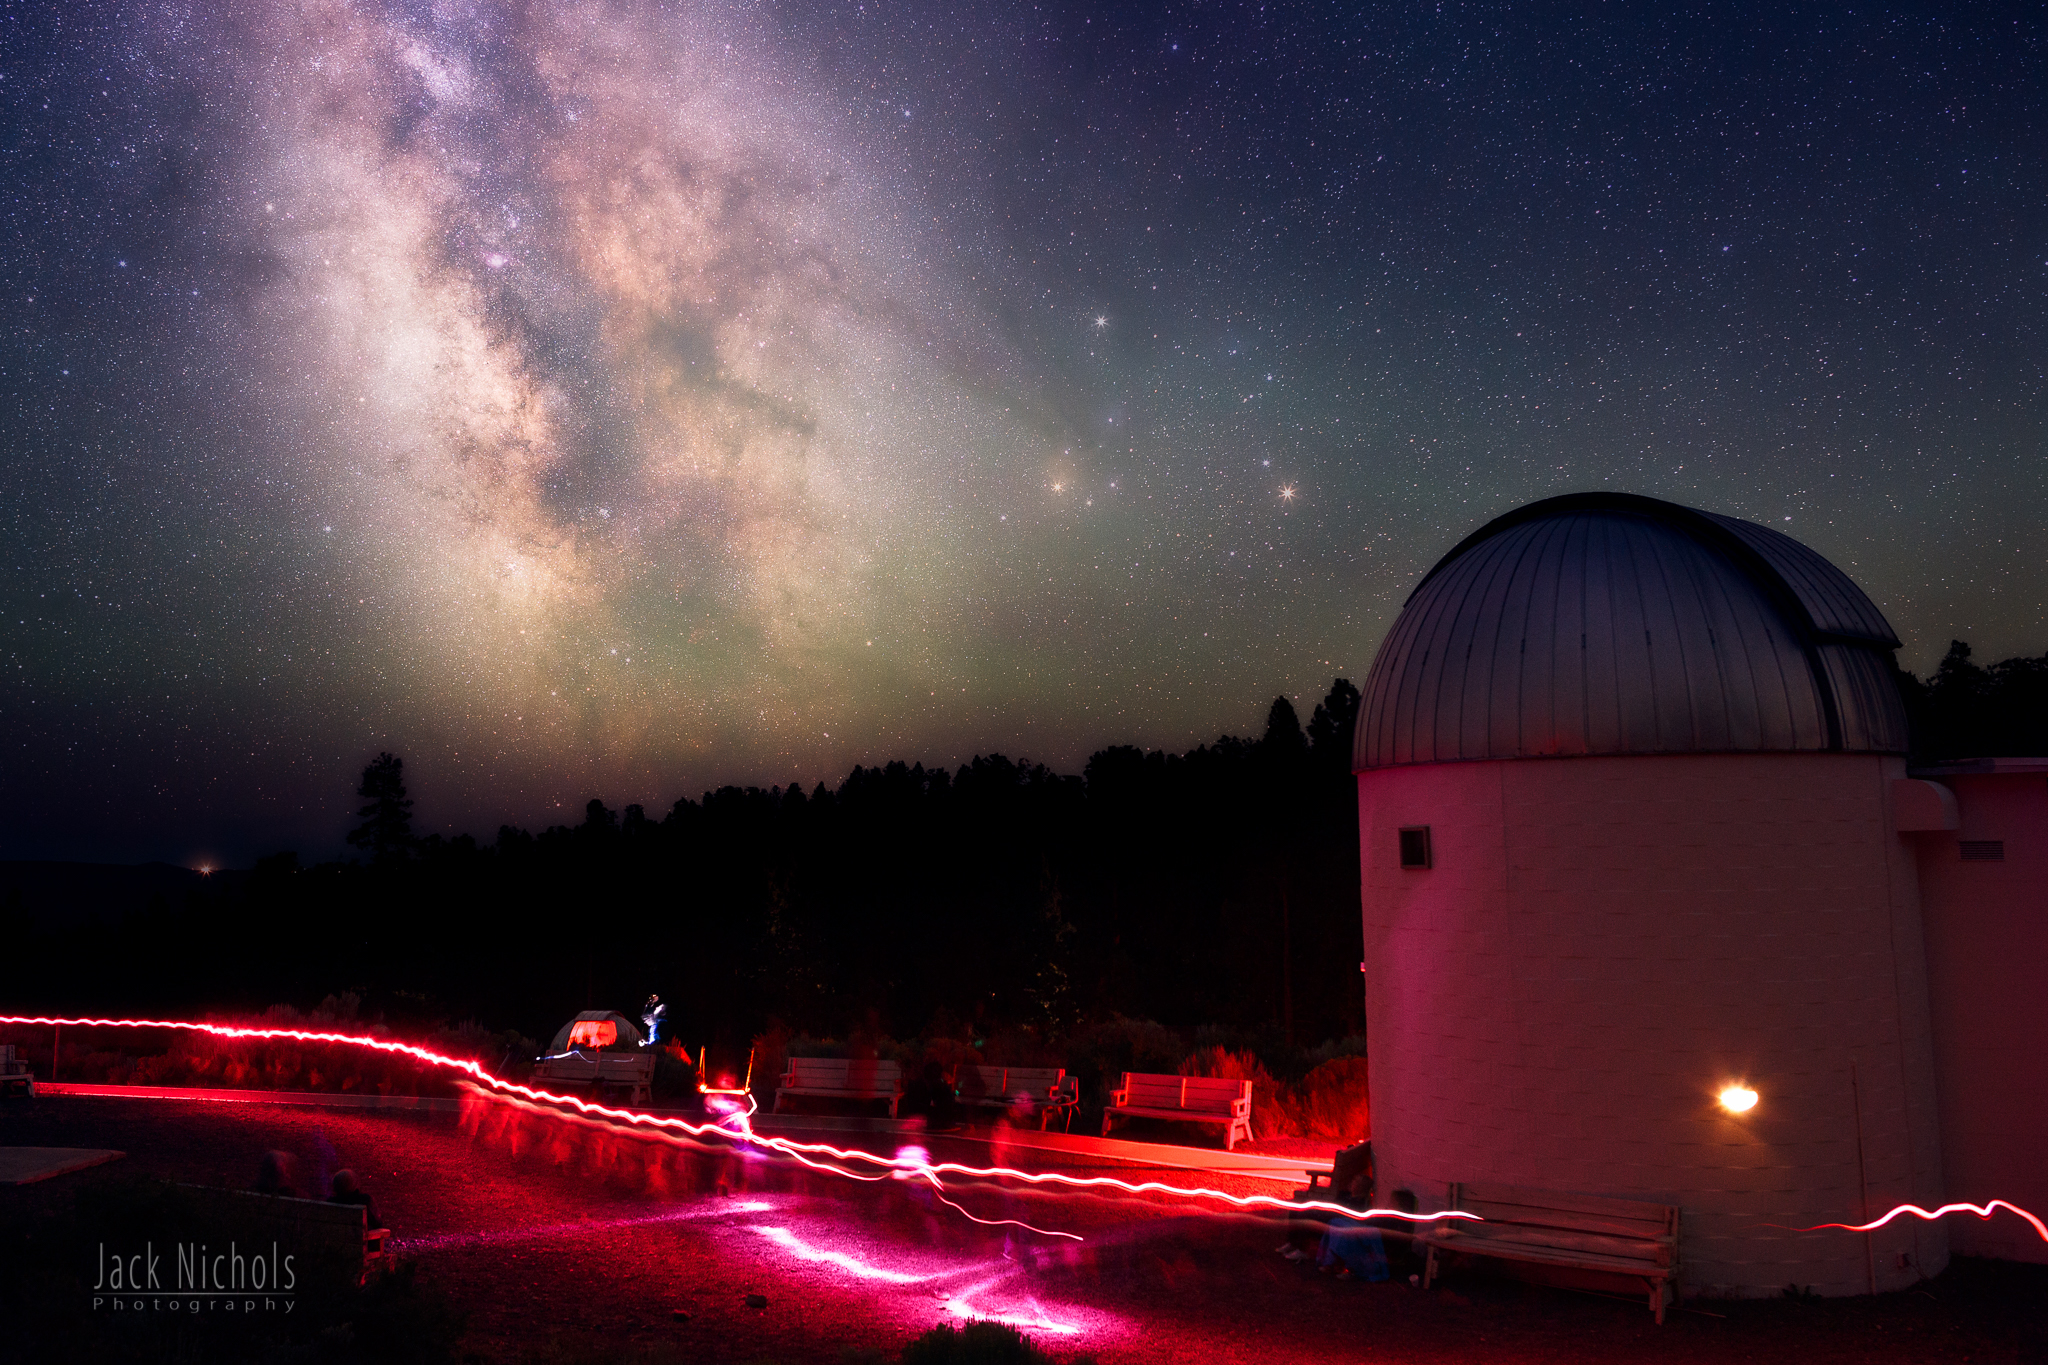 Milky Way example (Pine Mountain Observatory, Bend, Oregon)